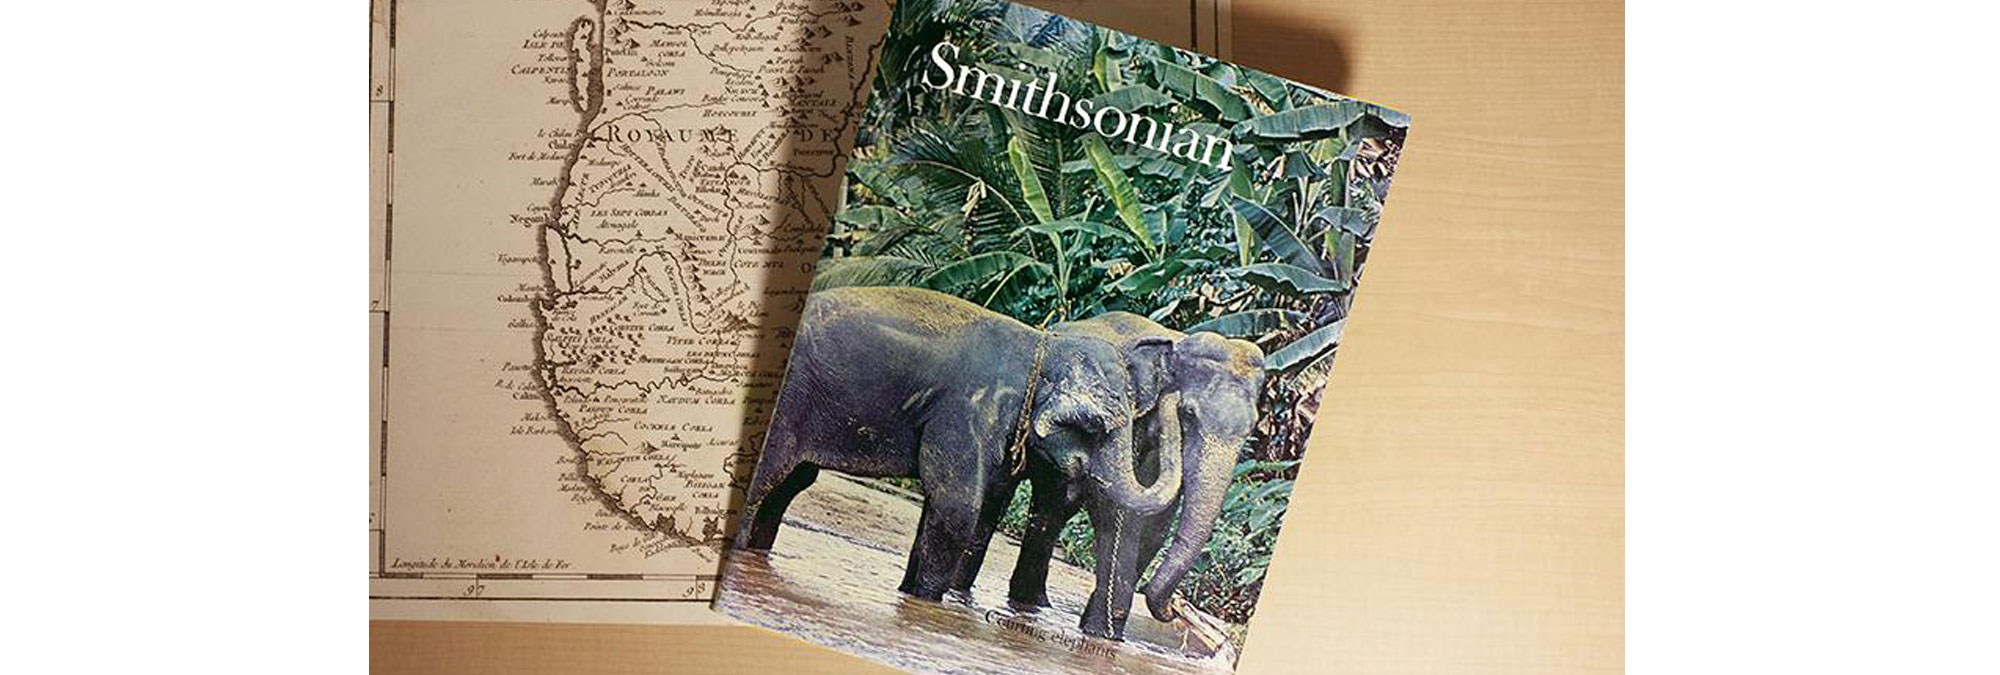 The cover story of the debut issue was about elephant breeding in Sri Lanka.